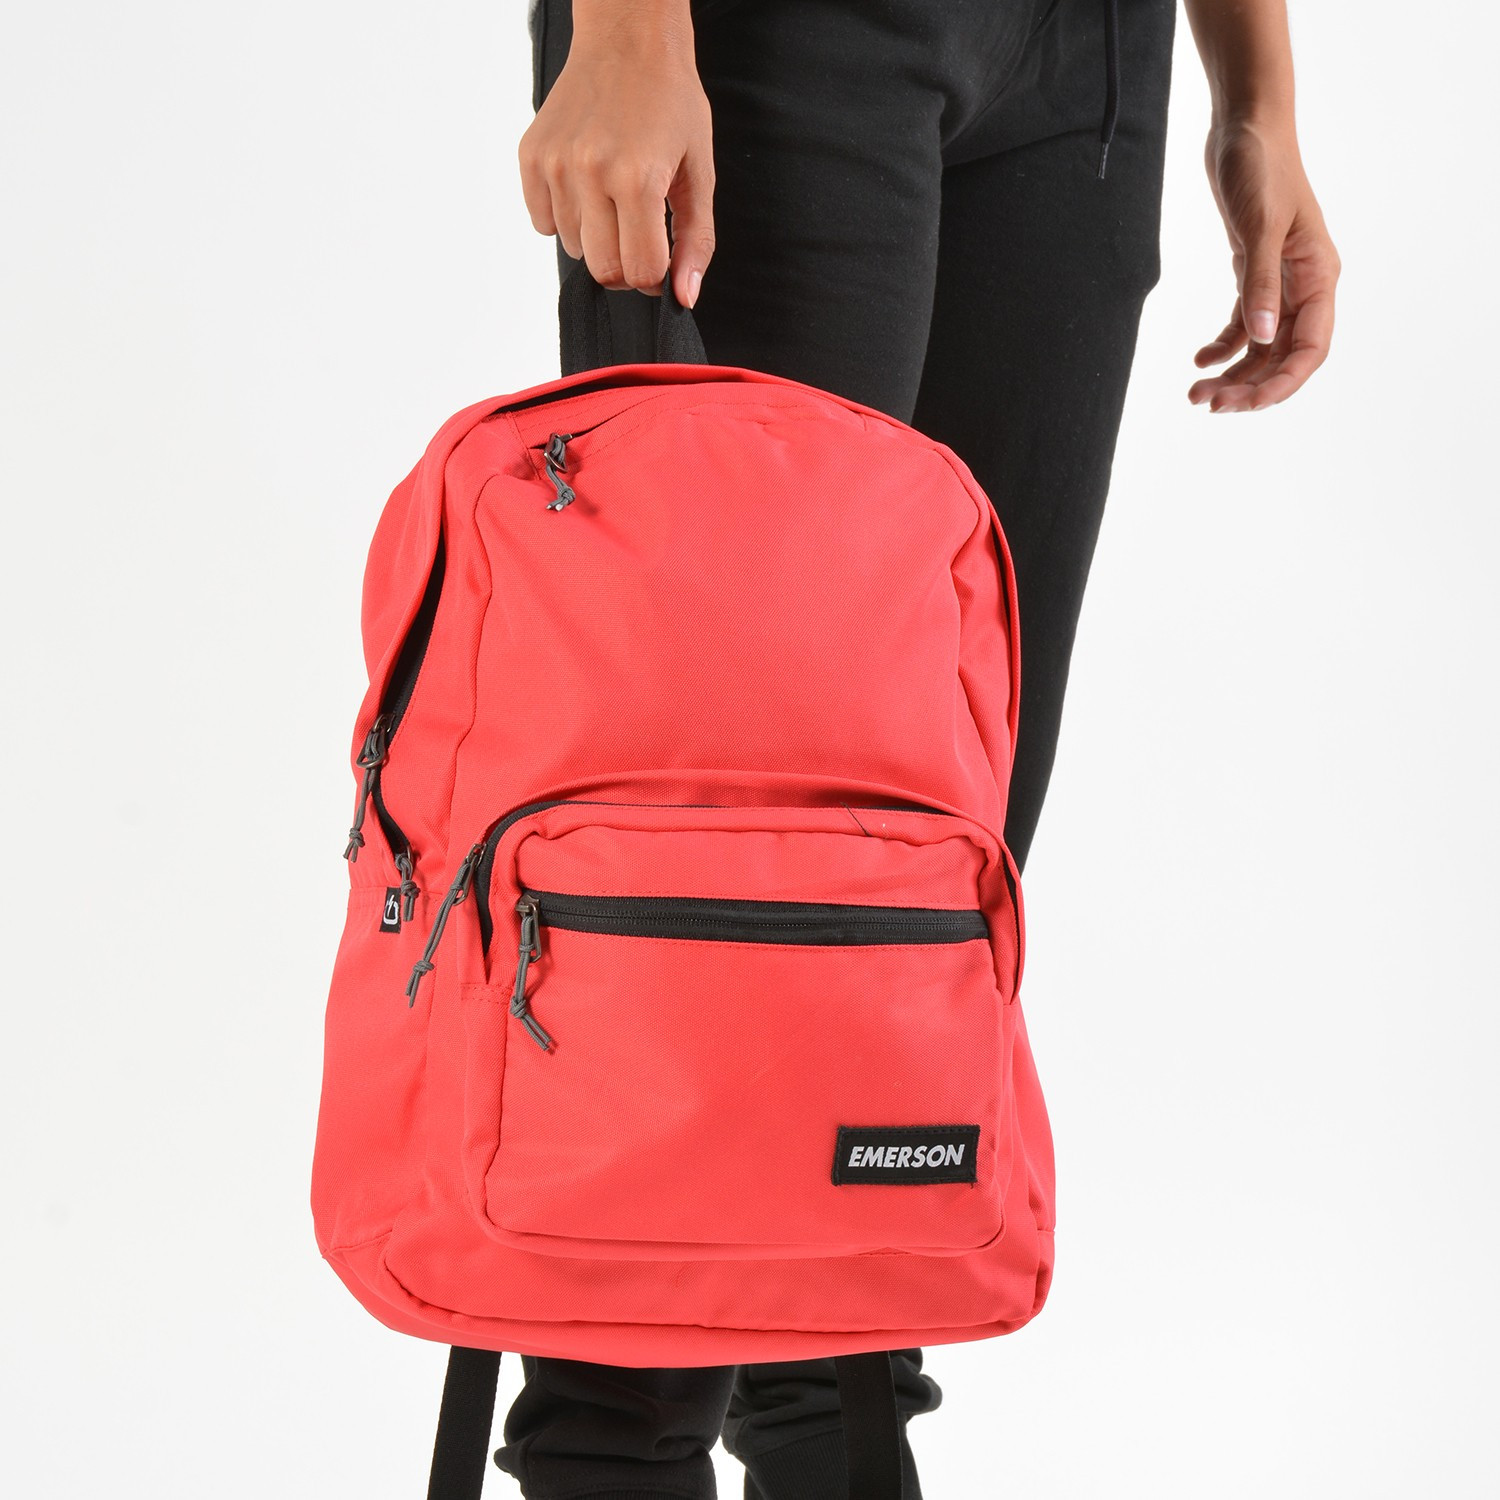 Emerson Backpack | Medium (9000016527_35284)